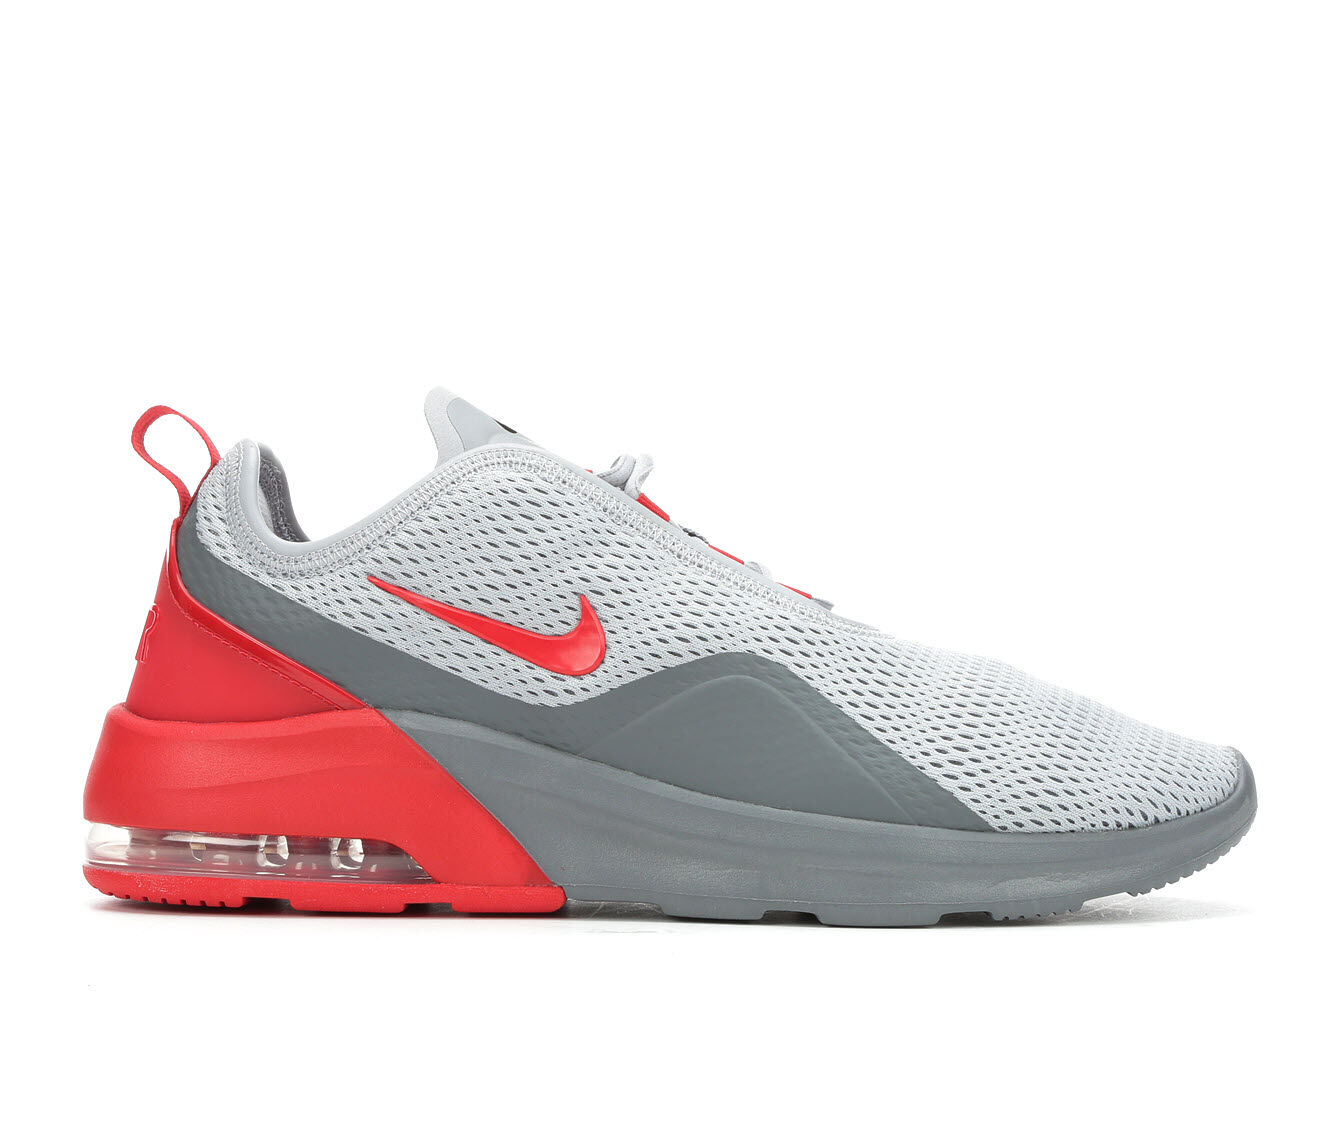 Men's Nike Air Max Motion 2 Sneakers Gry/Red 001